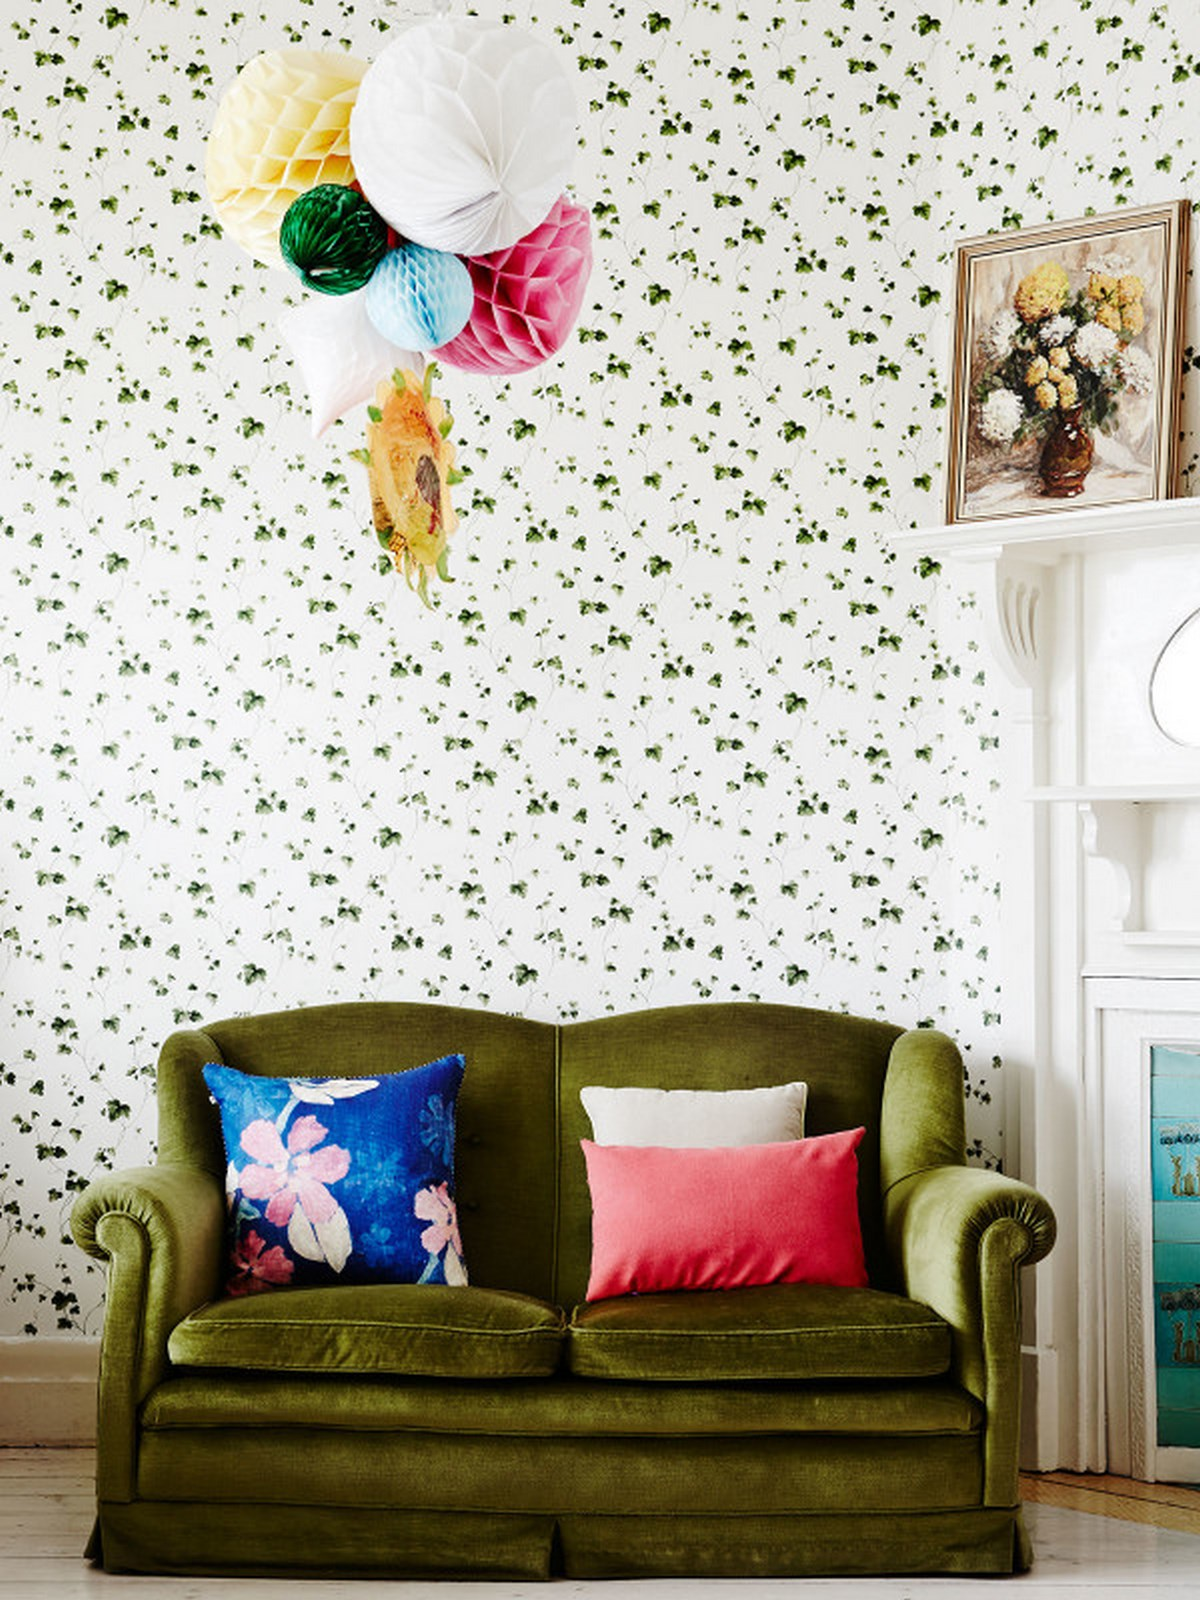 7-living-room-contemporary-nordic-style-ideas-with-green-sofa-and-multicolors-cuisine-with-balck-and-white-decoration-wallpapers